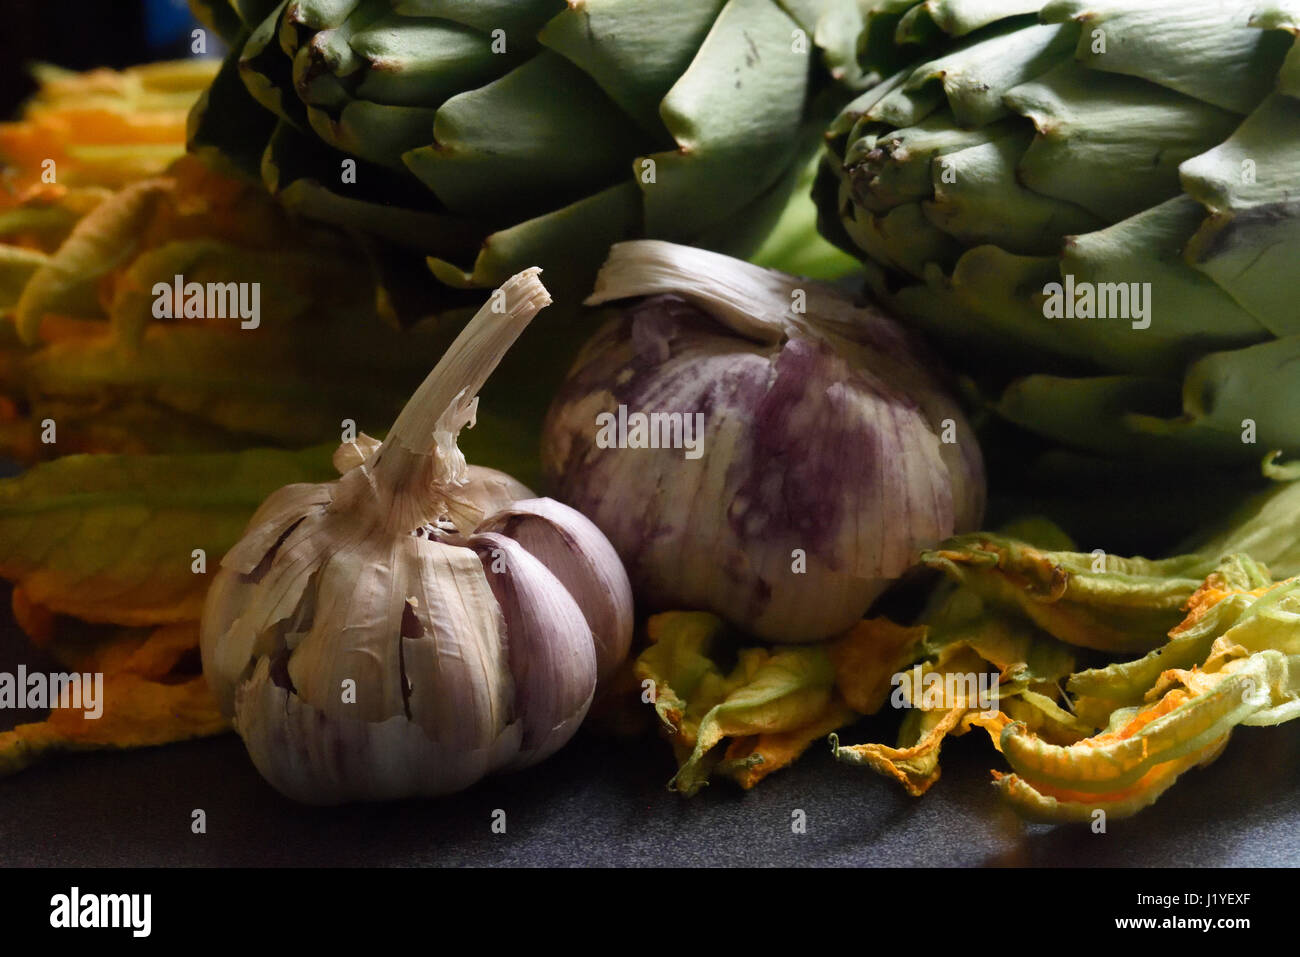 Mixed vegetables, featuring garlic and artichokes, in grainy moody lighting - Stock Image